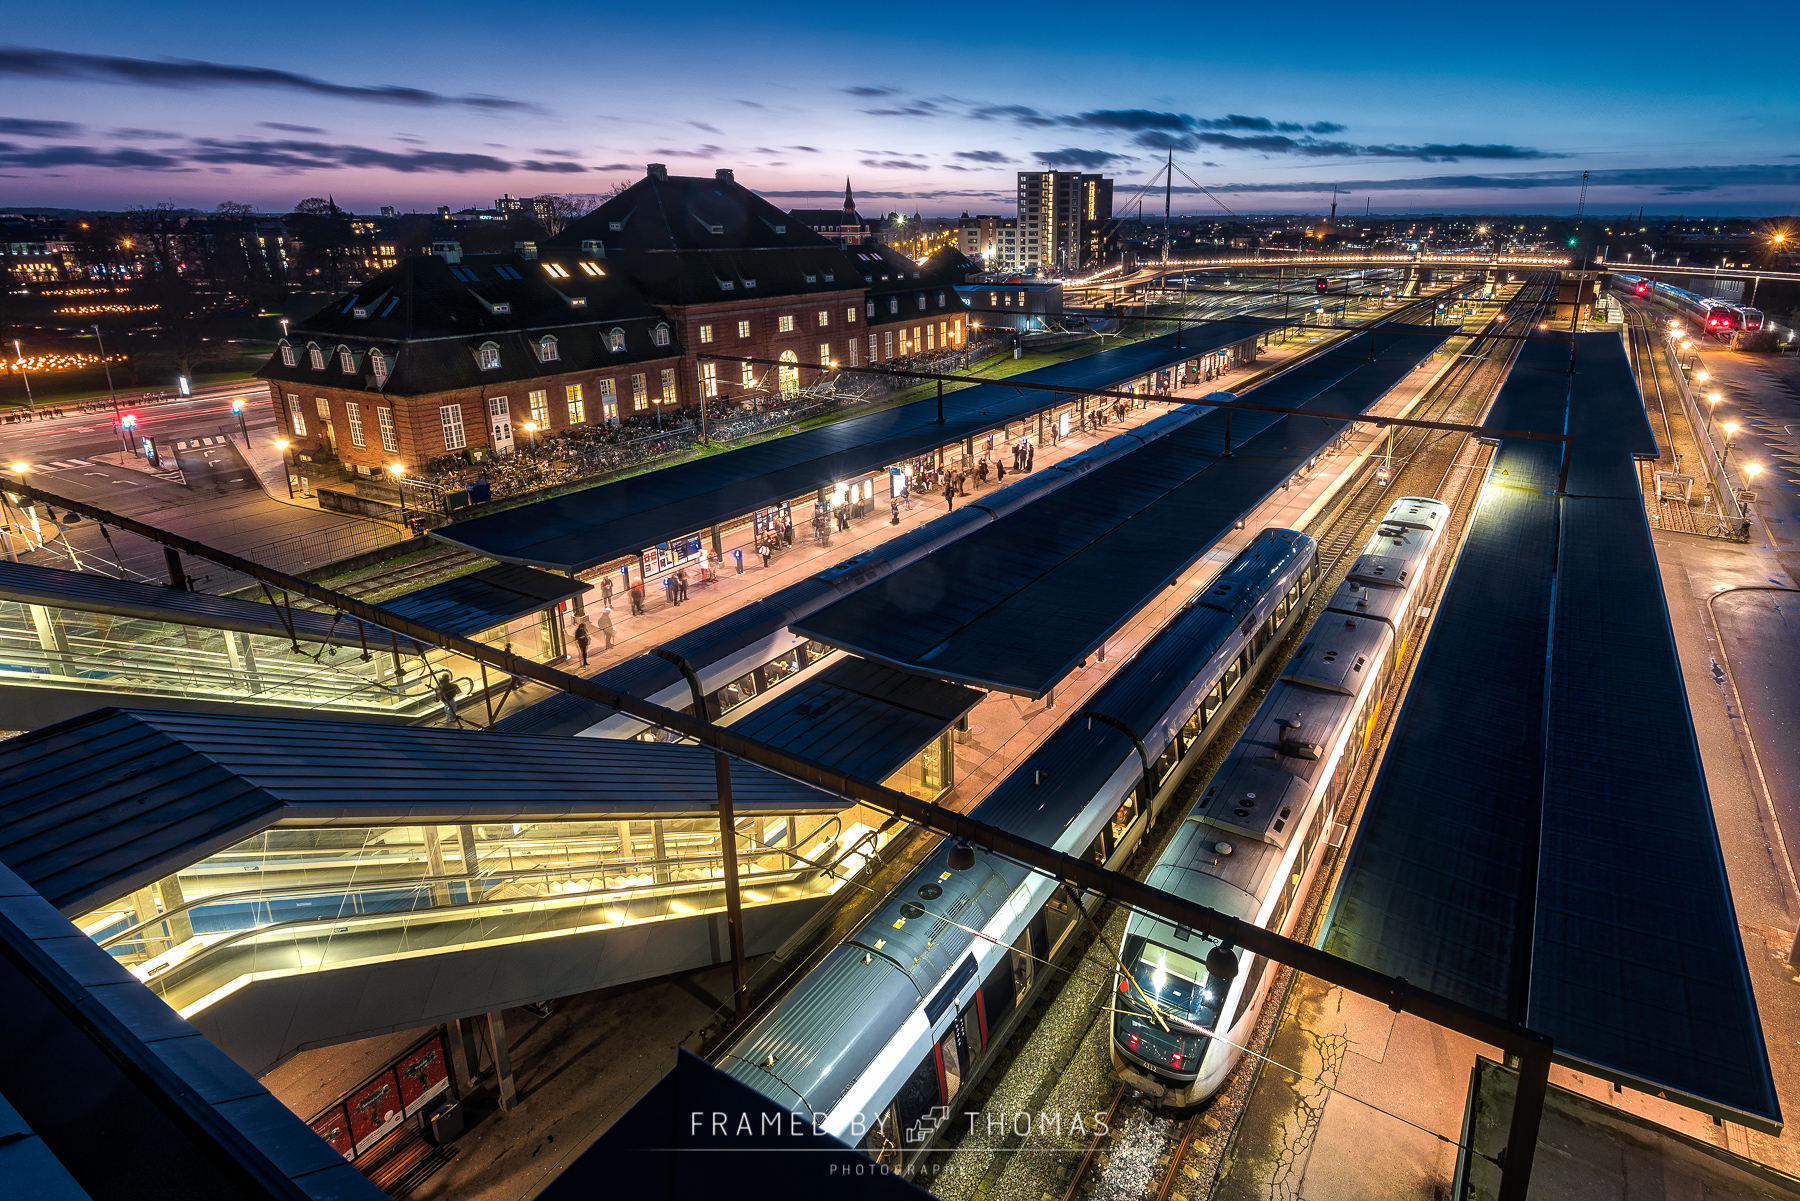 Odense central train station from above